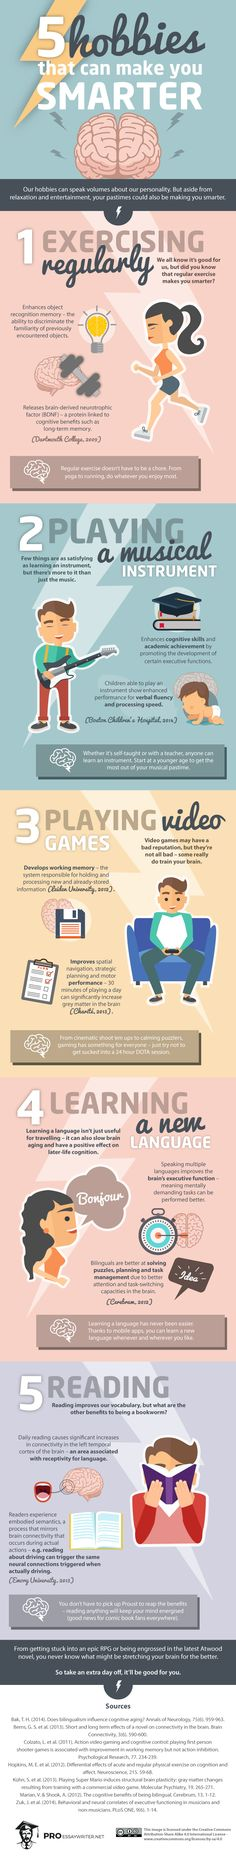 5 Hobbies that Can Make you Smarter - mind, spirit & body health & wellbeing                                                                                                                                                                                 More